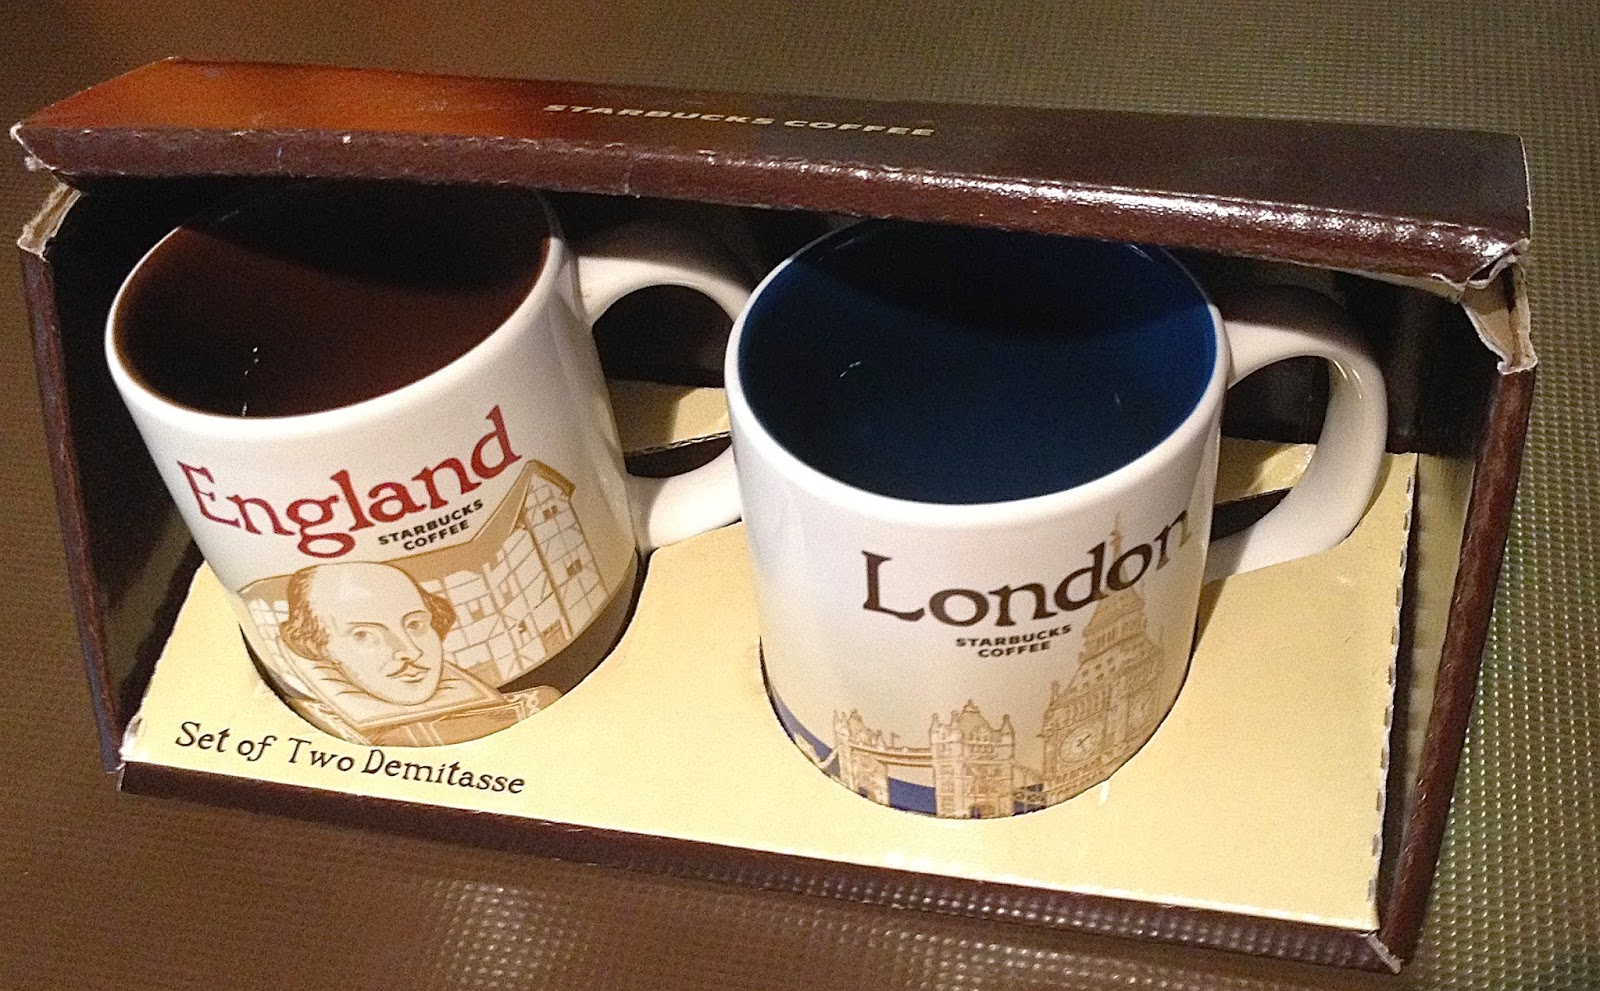 Travel With Angela Lansbury Souvenir Of London From